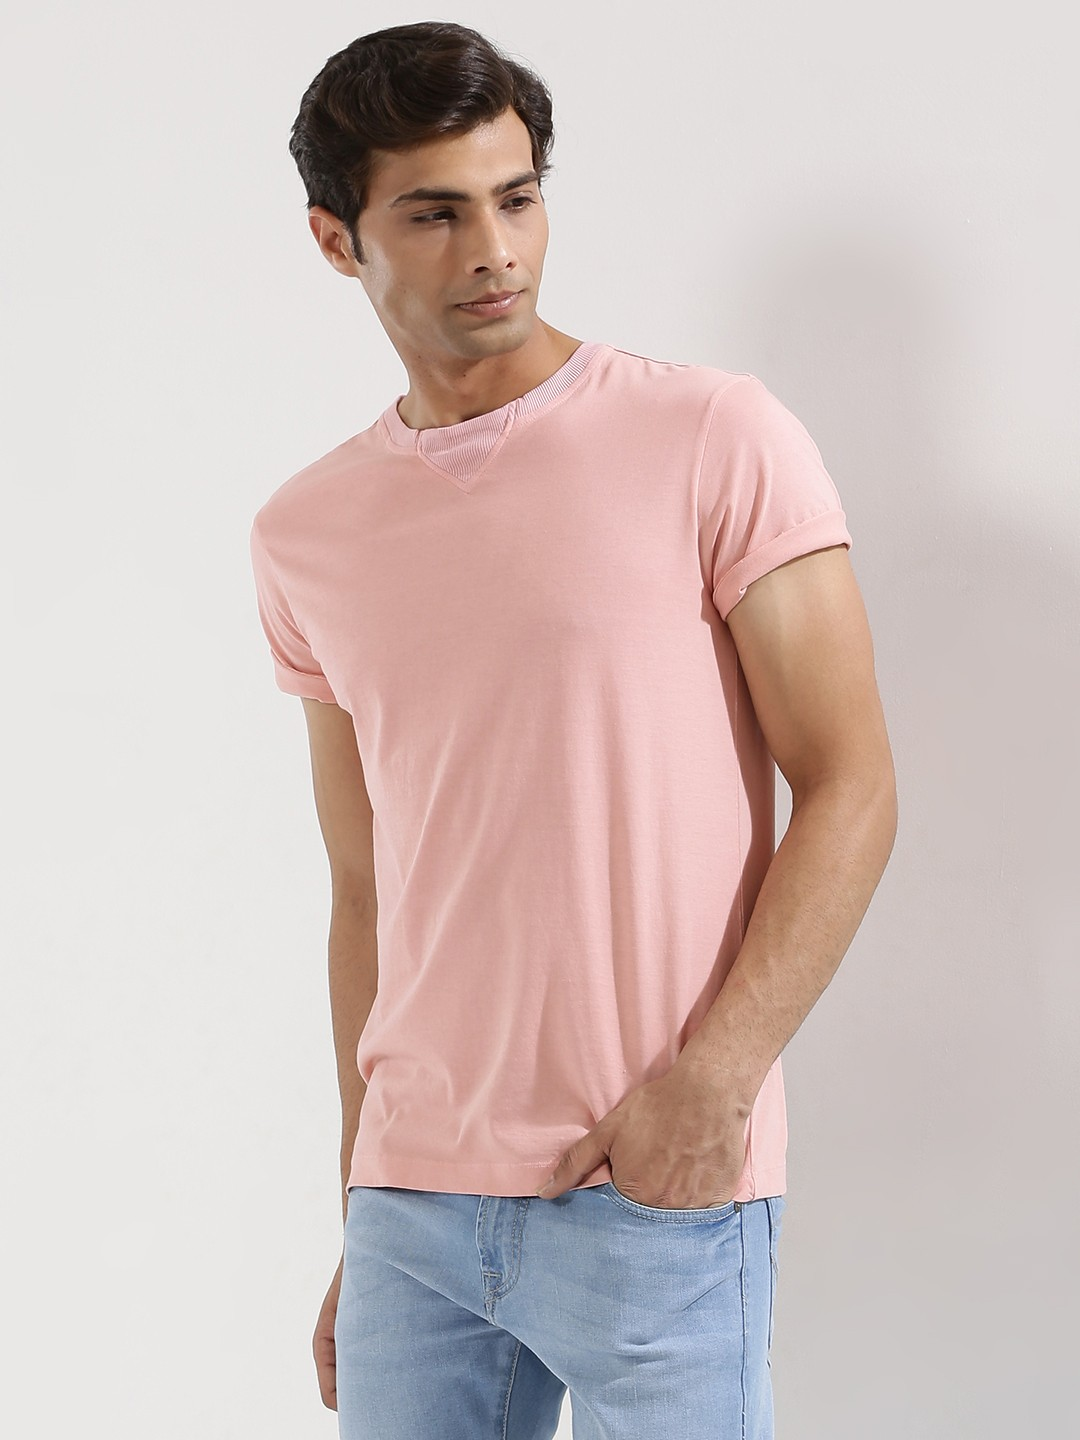 T-Shirts Online - Shop for printed T-shirts and sports T-shirts for men & women in India. Huge range of V-neck, round neck & polo T-shirts from top brands like Jack and Jones, Tommy Hilfiger, UCB and more T-shirts prices starts from INR